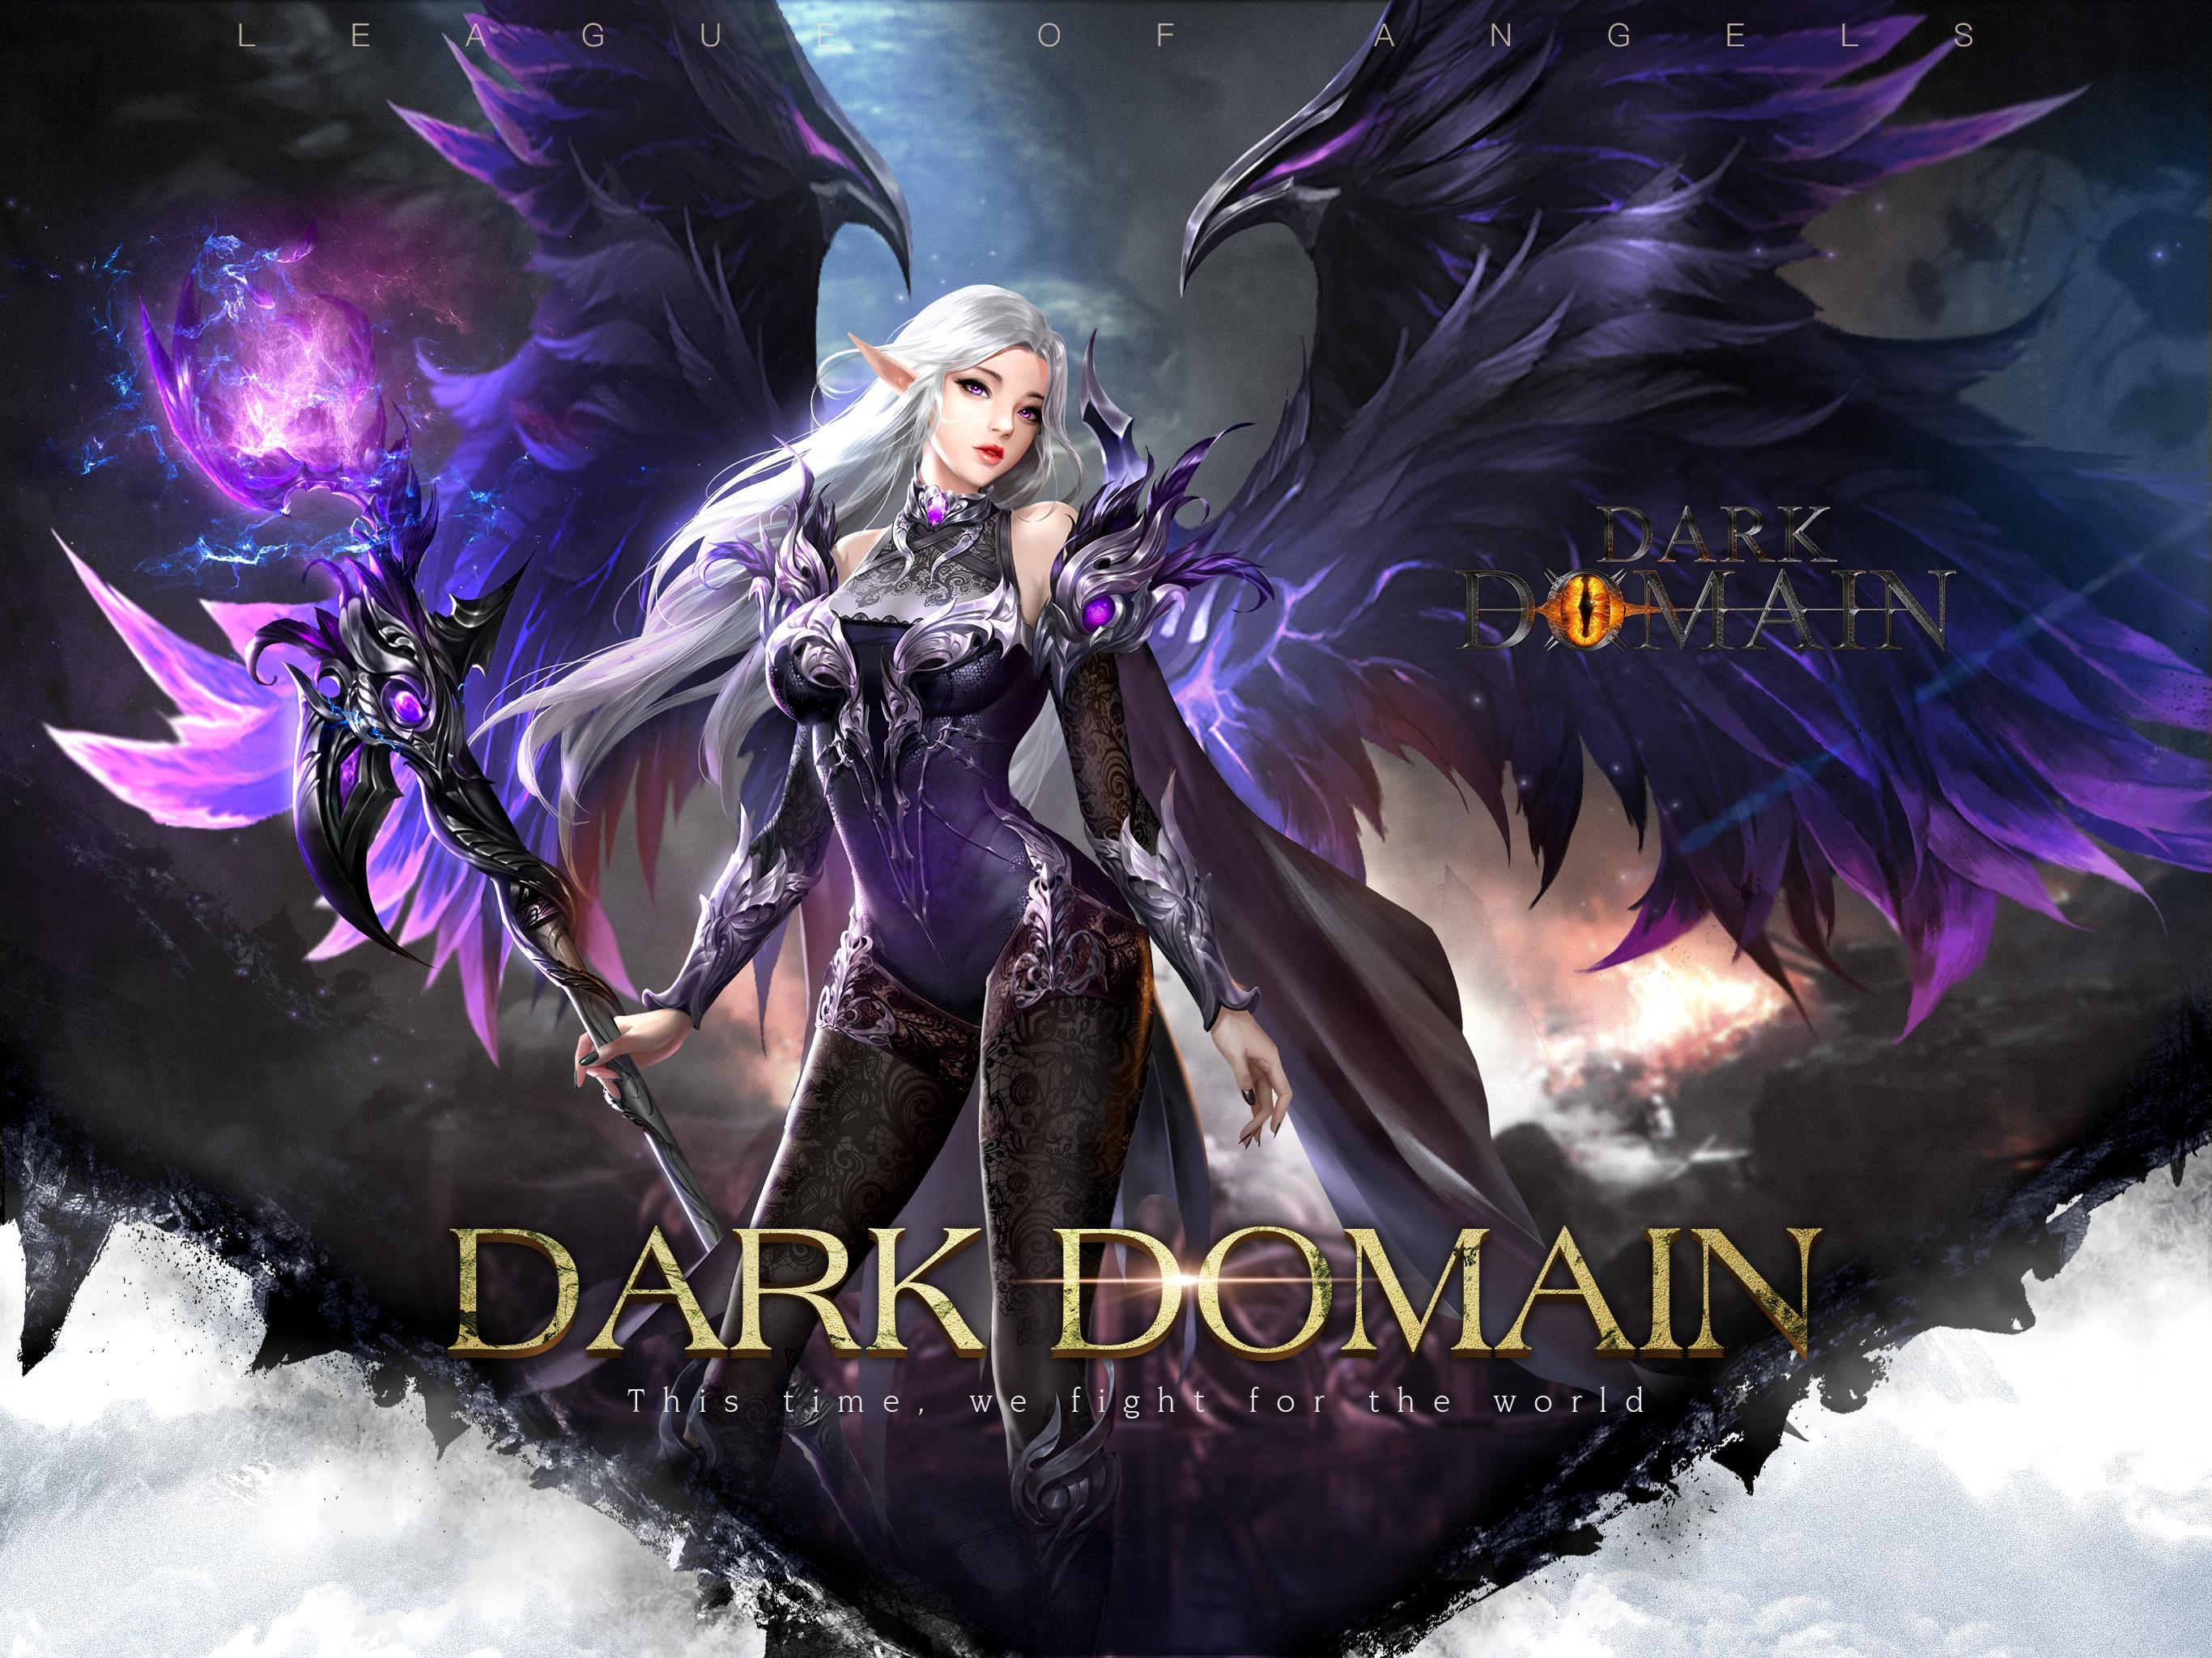 Dark Domain for Android - APK Download